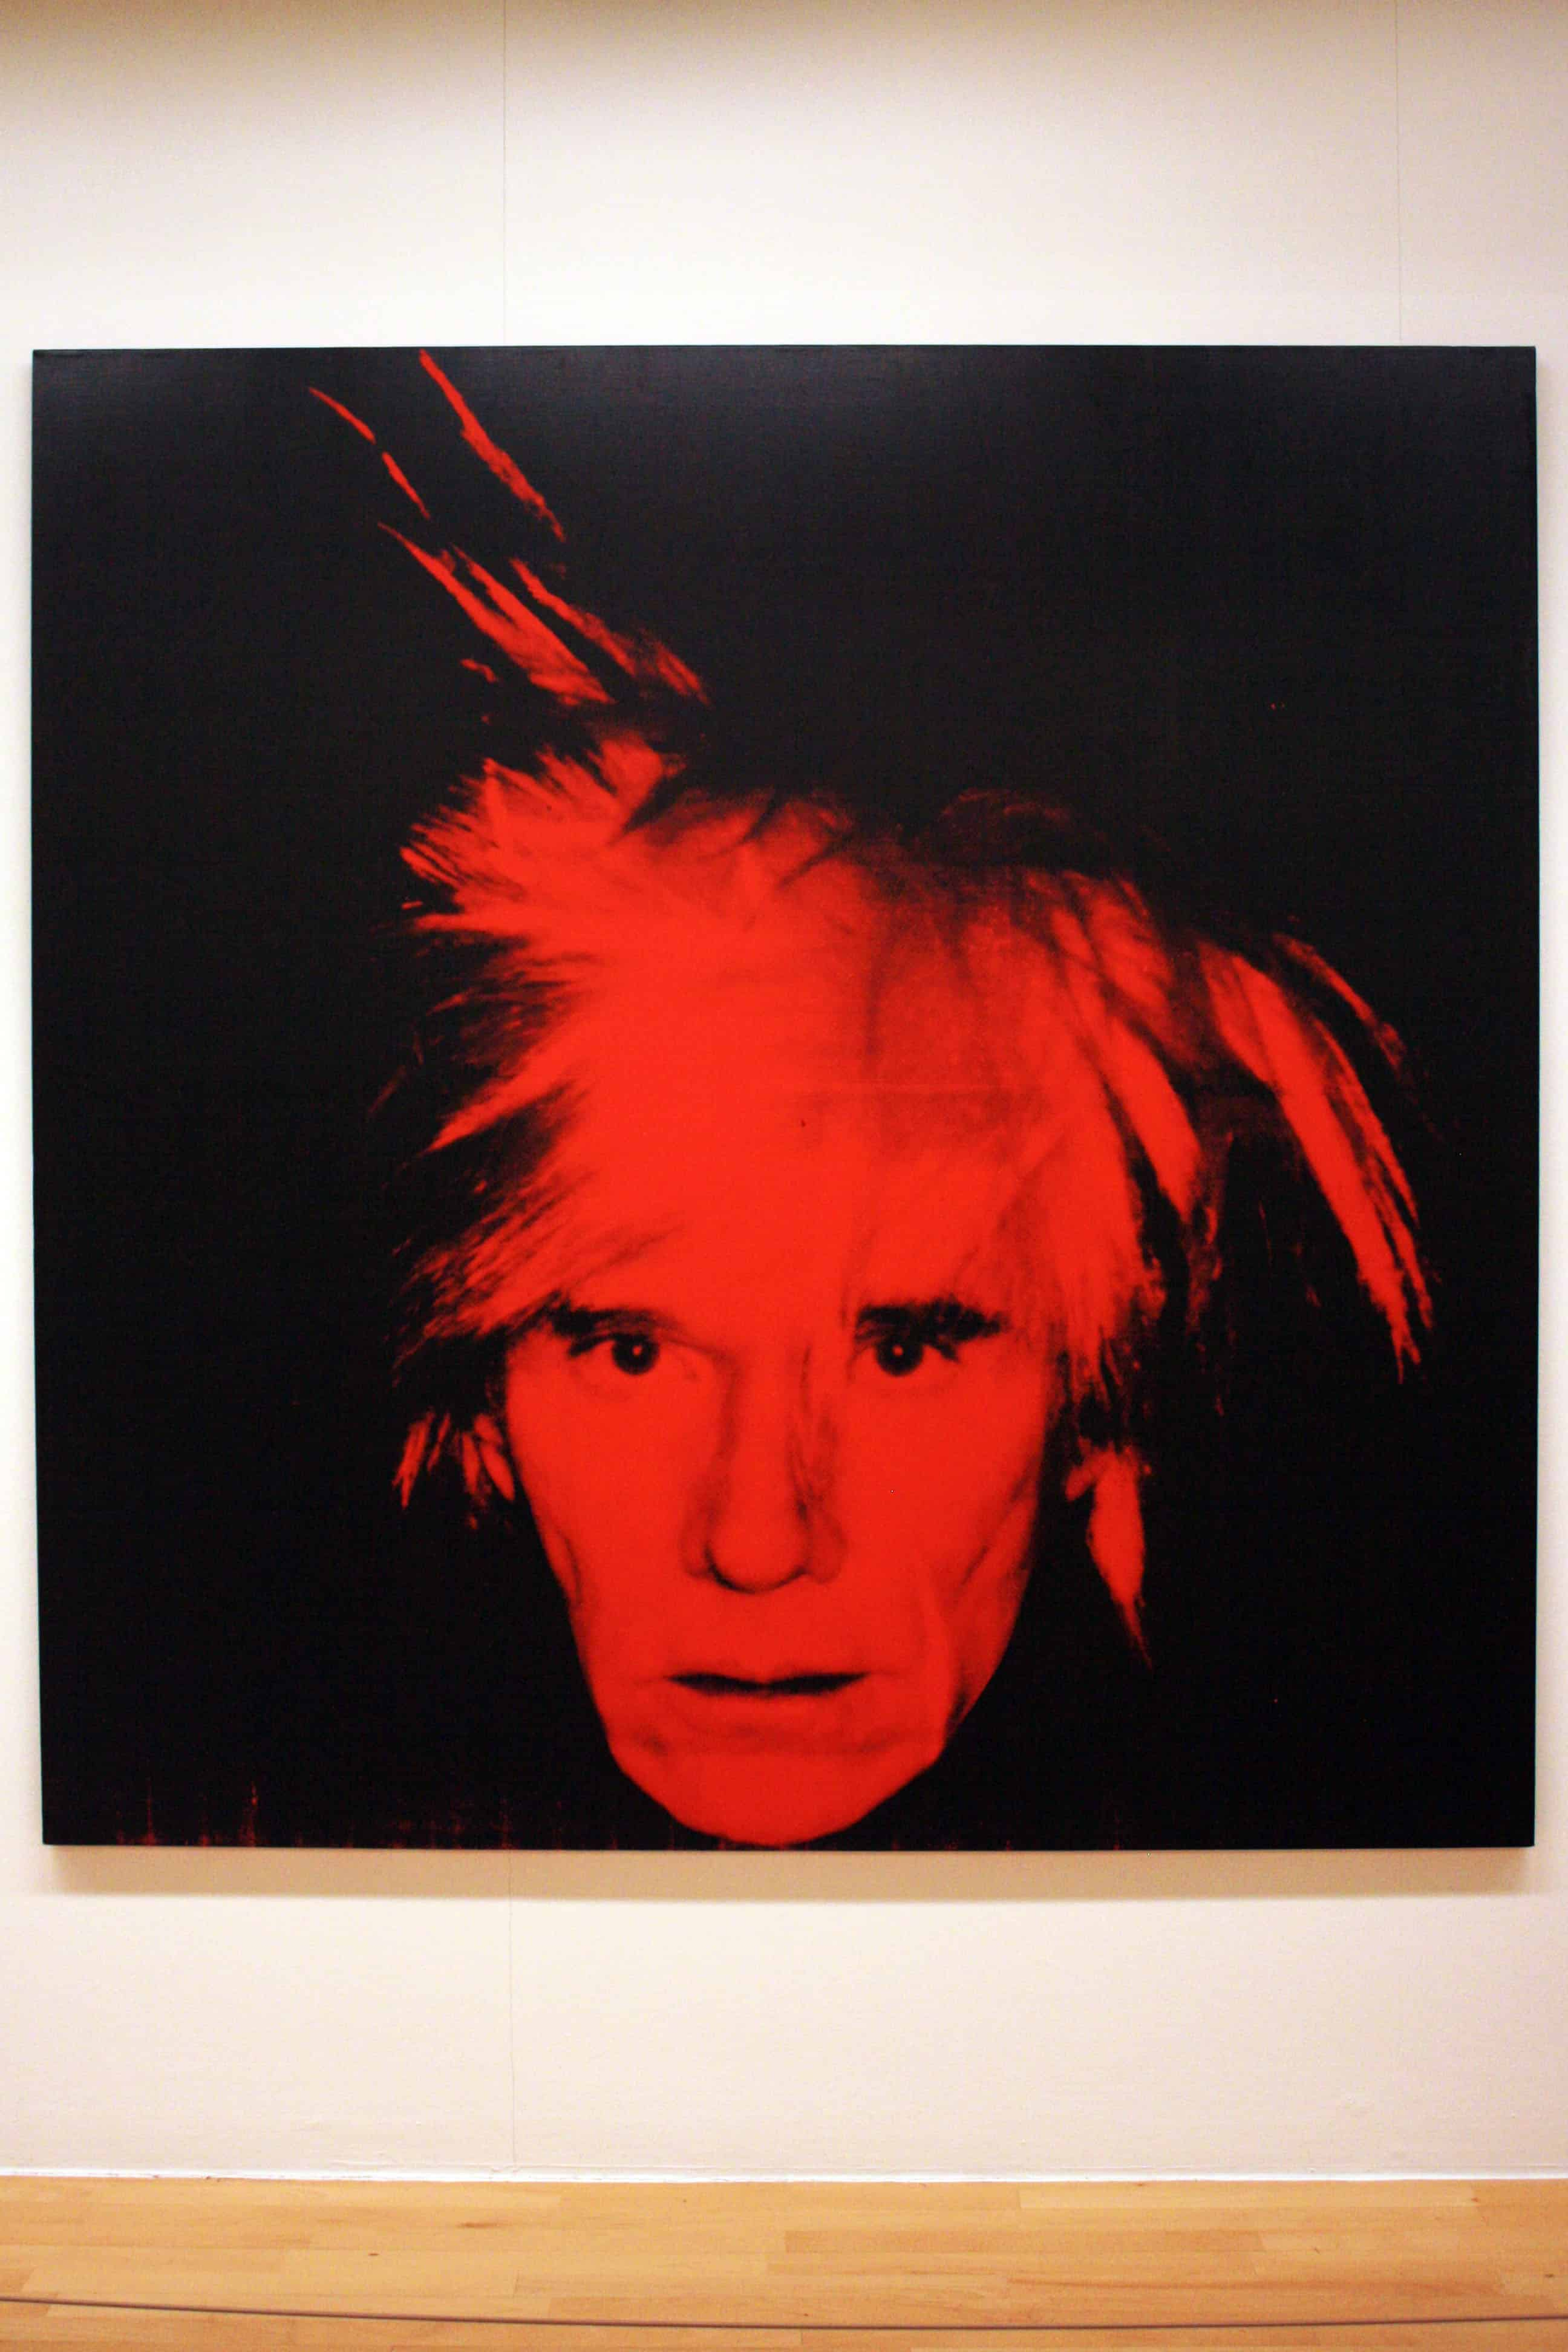 Andy Warhol - Self Portrait 1986 at Tate Liverpool